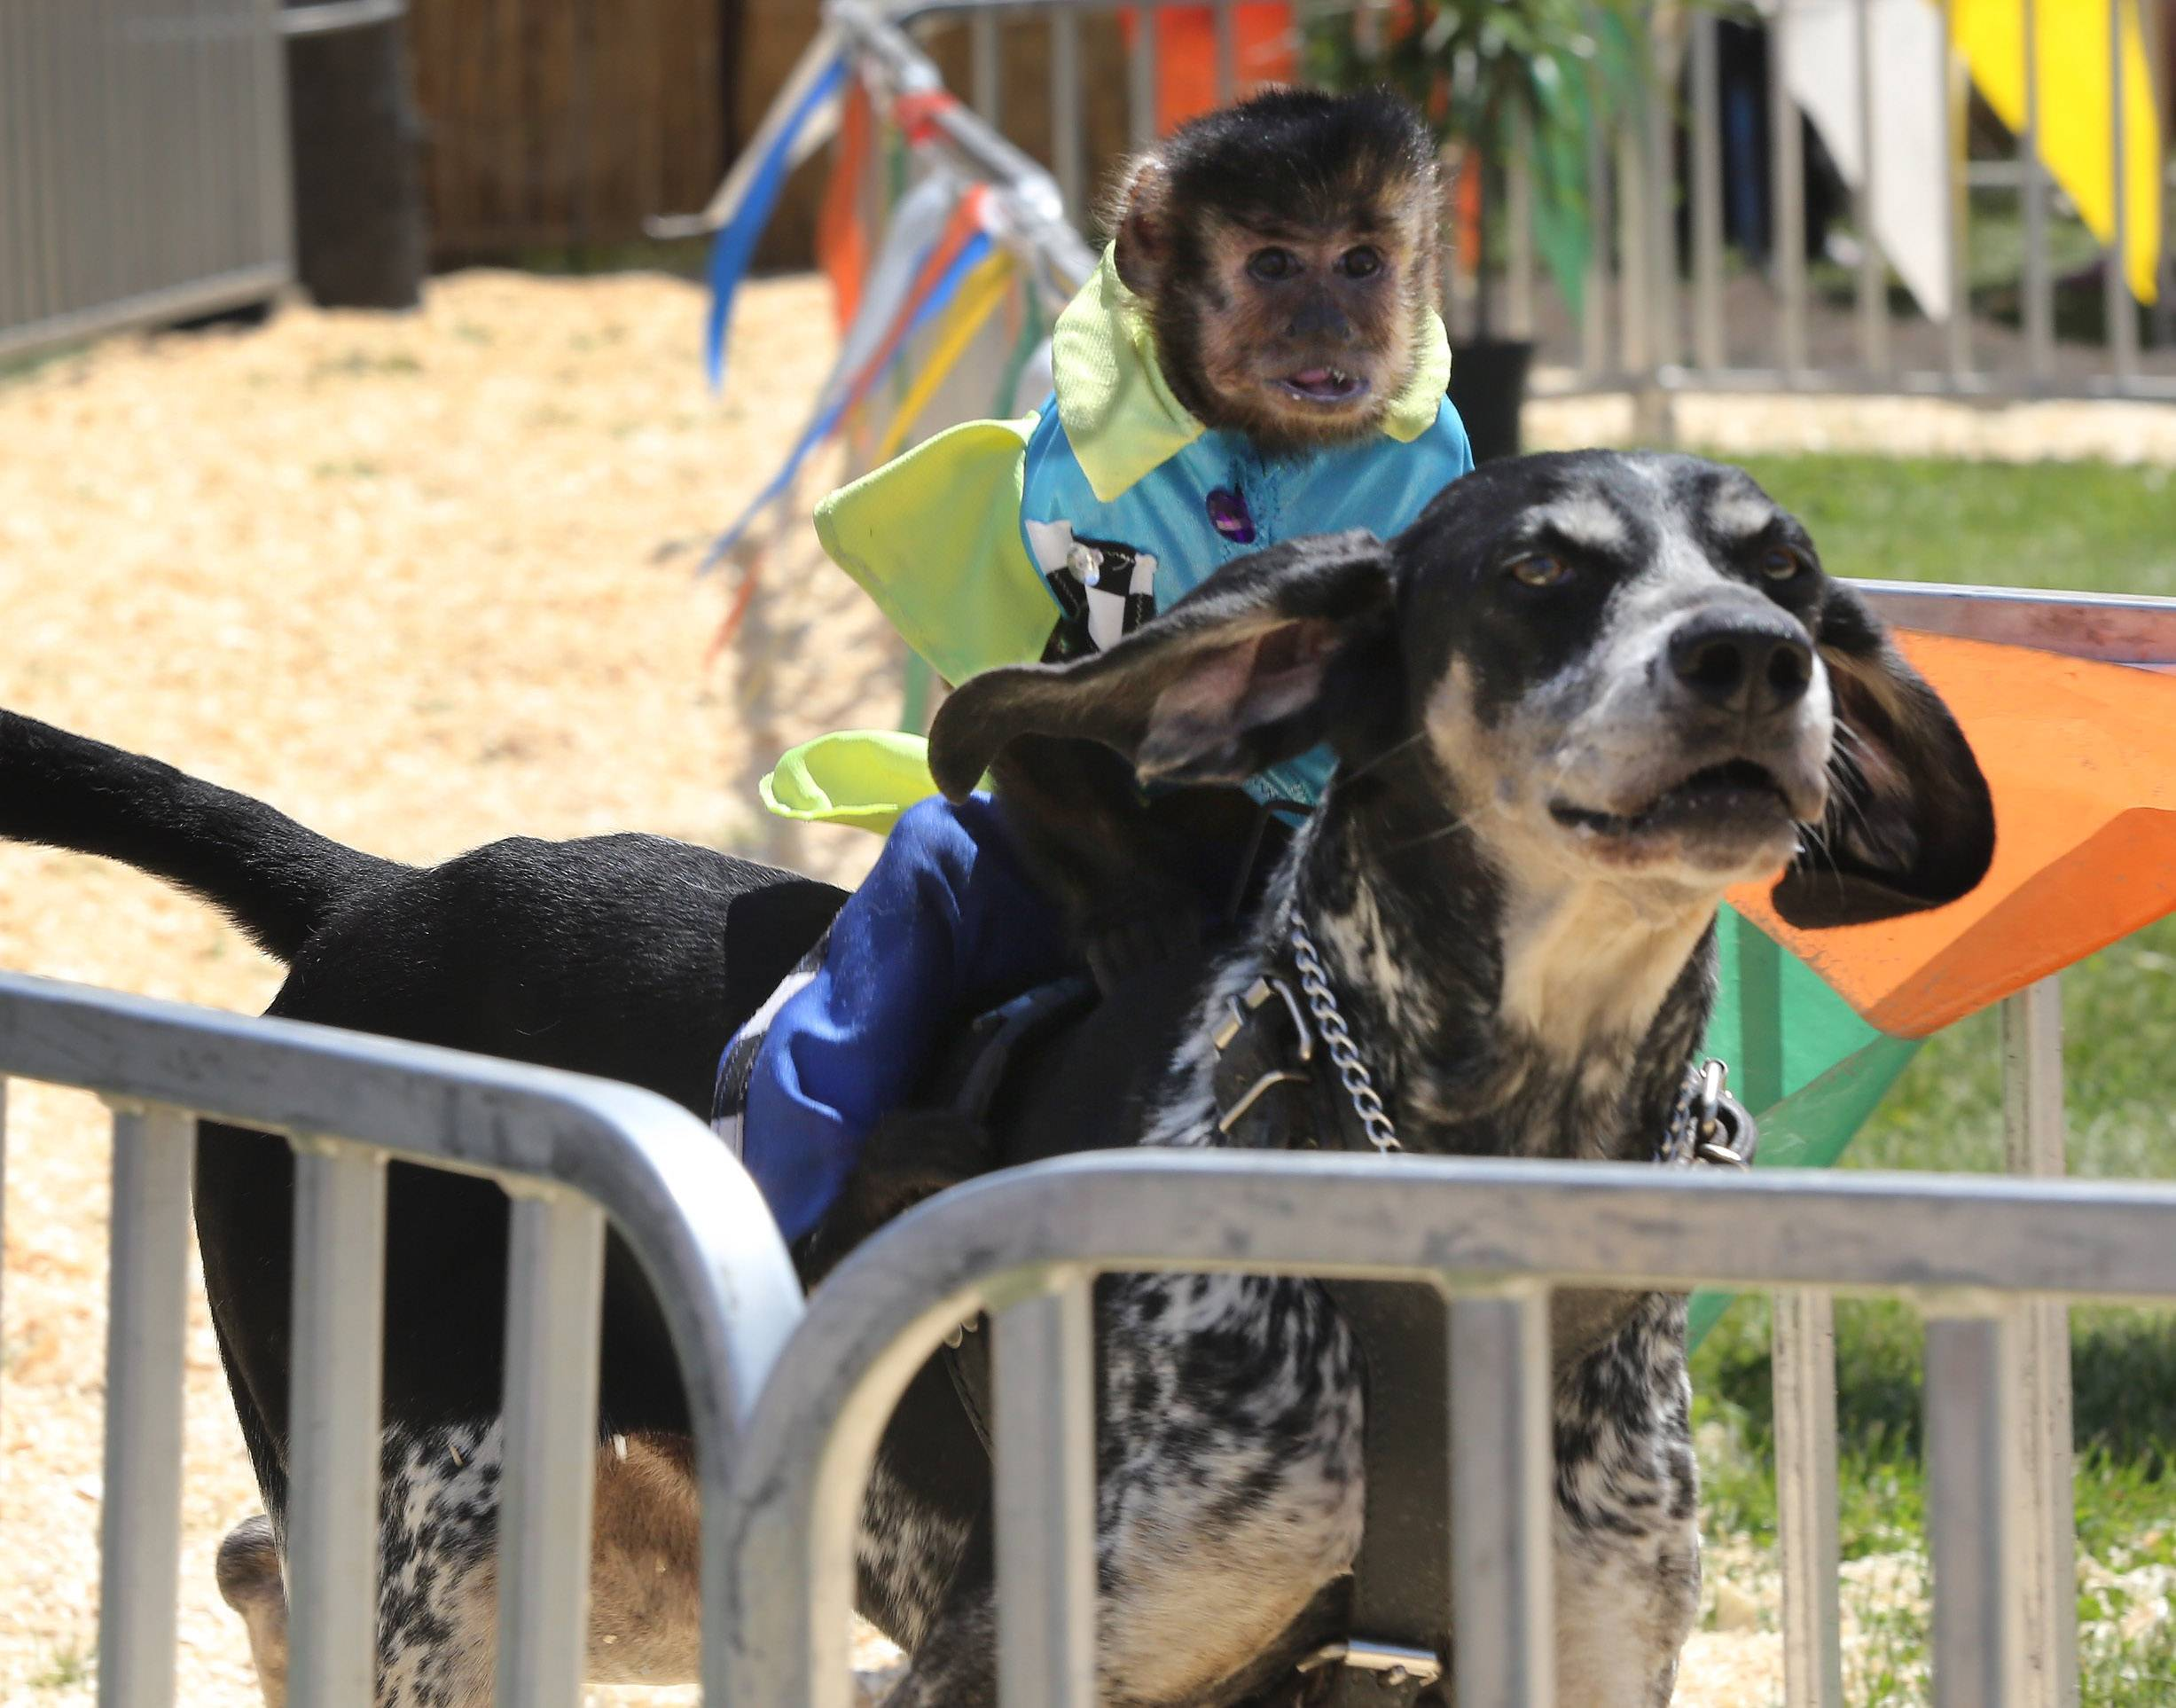 Burt, a capuchin monkey, rides Scooby Blu after winning the race Wednesday during the Banana Derby at the Lake County Fair in Grayslake. The show featured capuchin monkeys riding dogs around a track.